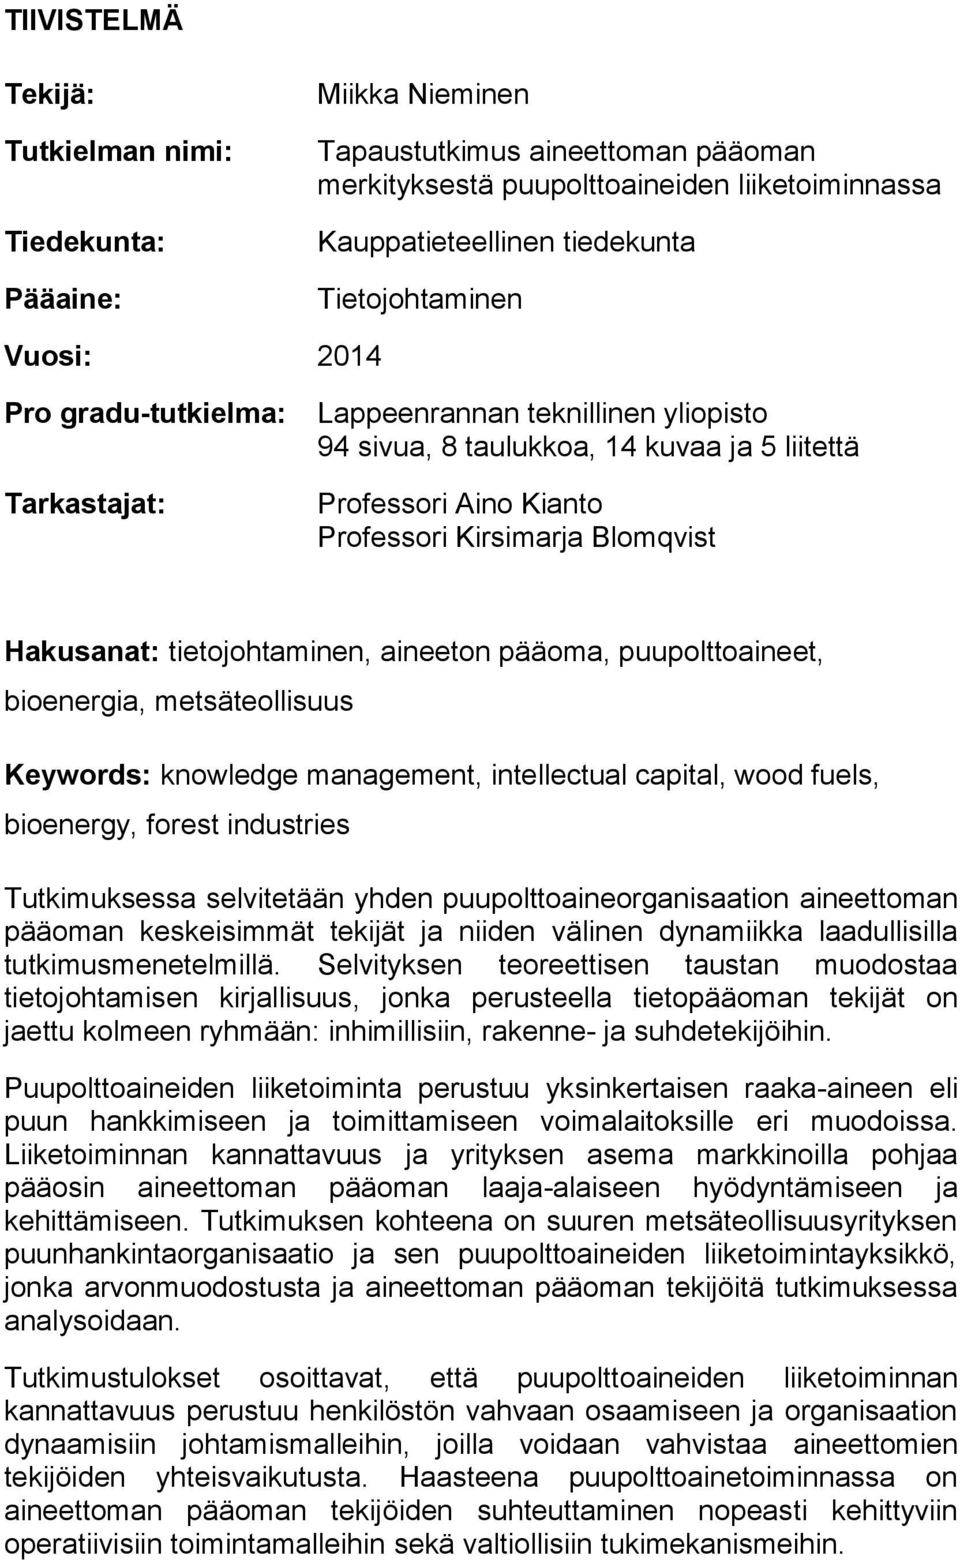 Hakusanat: tietojohtaminen, aineeton pääoma, puupolttoaineet, bioenergia, metsäteollisuus Keywords: knowledge management, intellectual capital, wood fuels, bioenergy, forest industries Tutkimuksessa